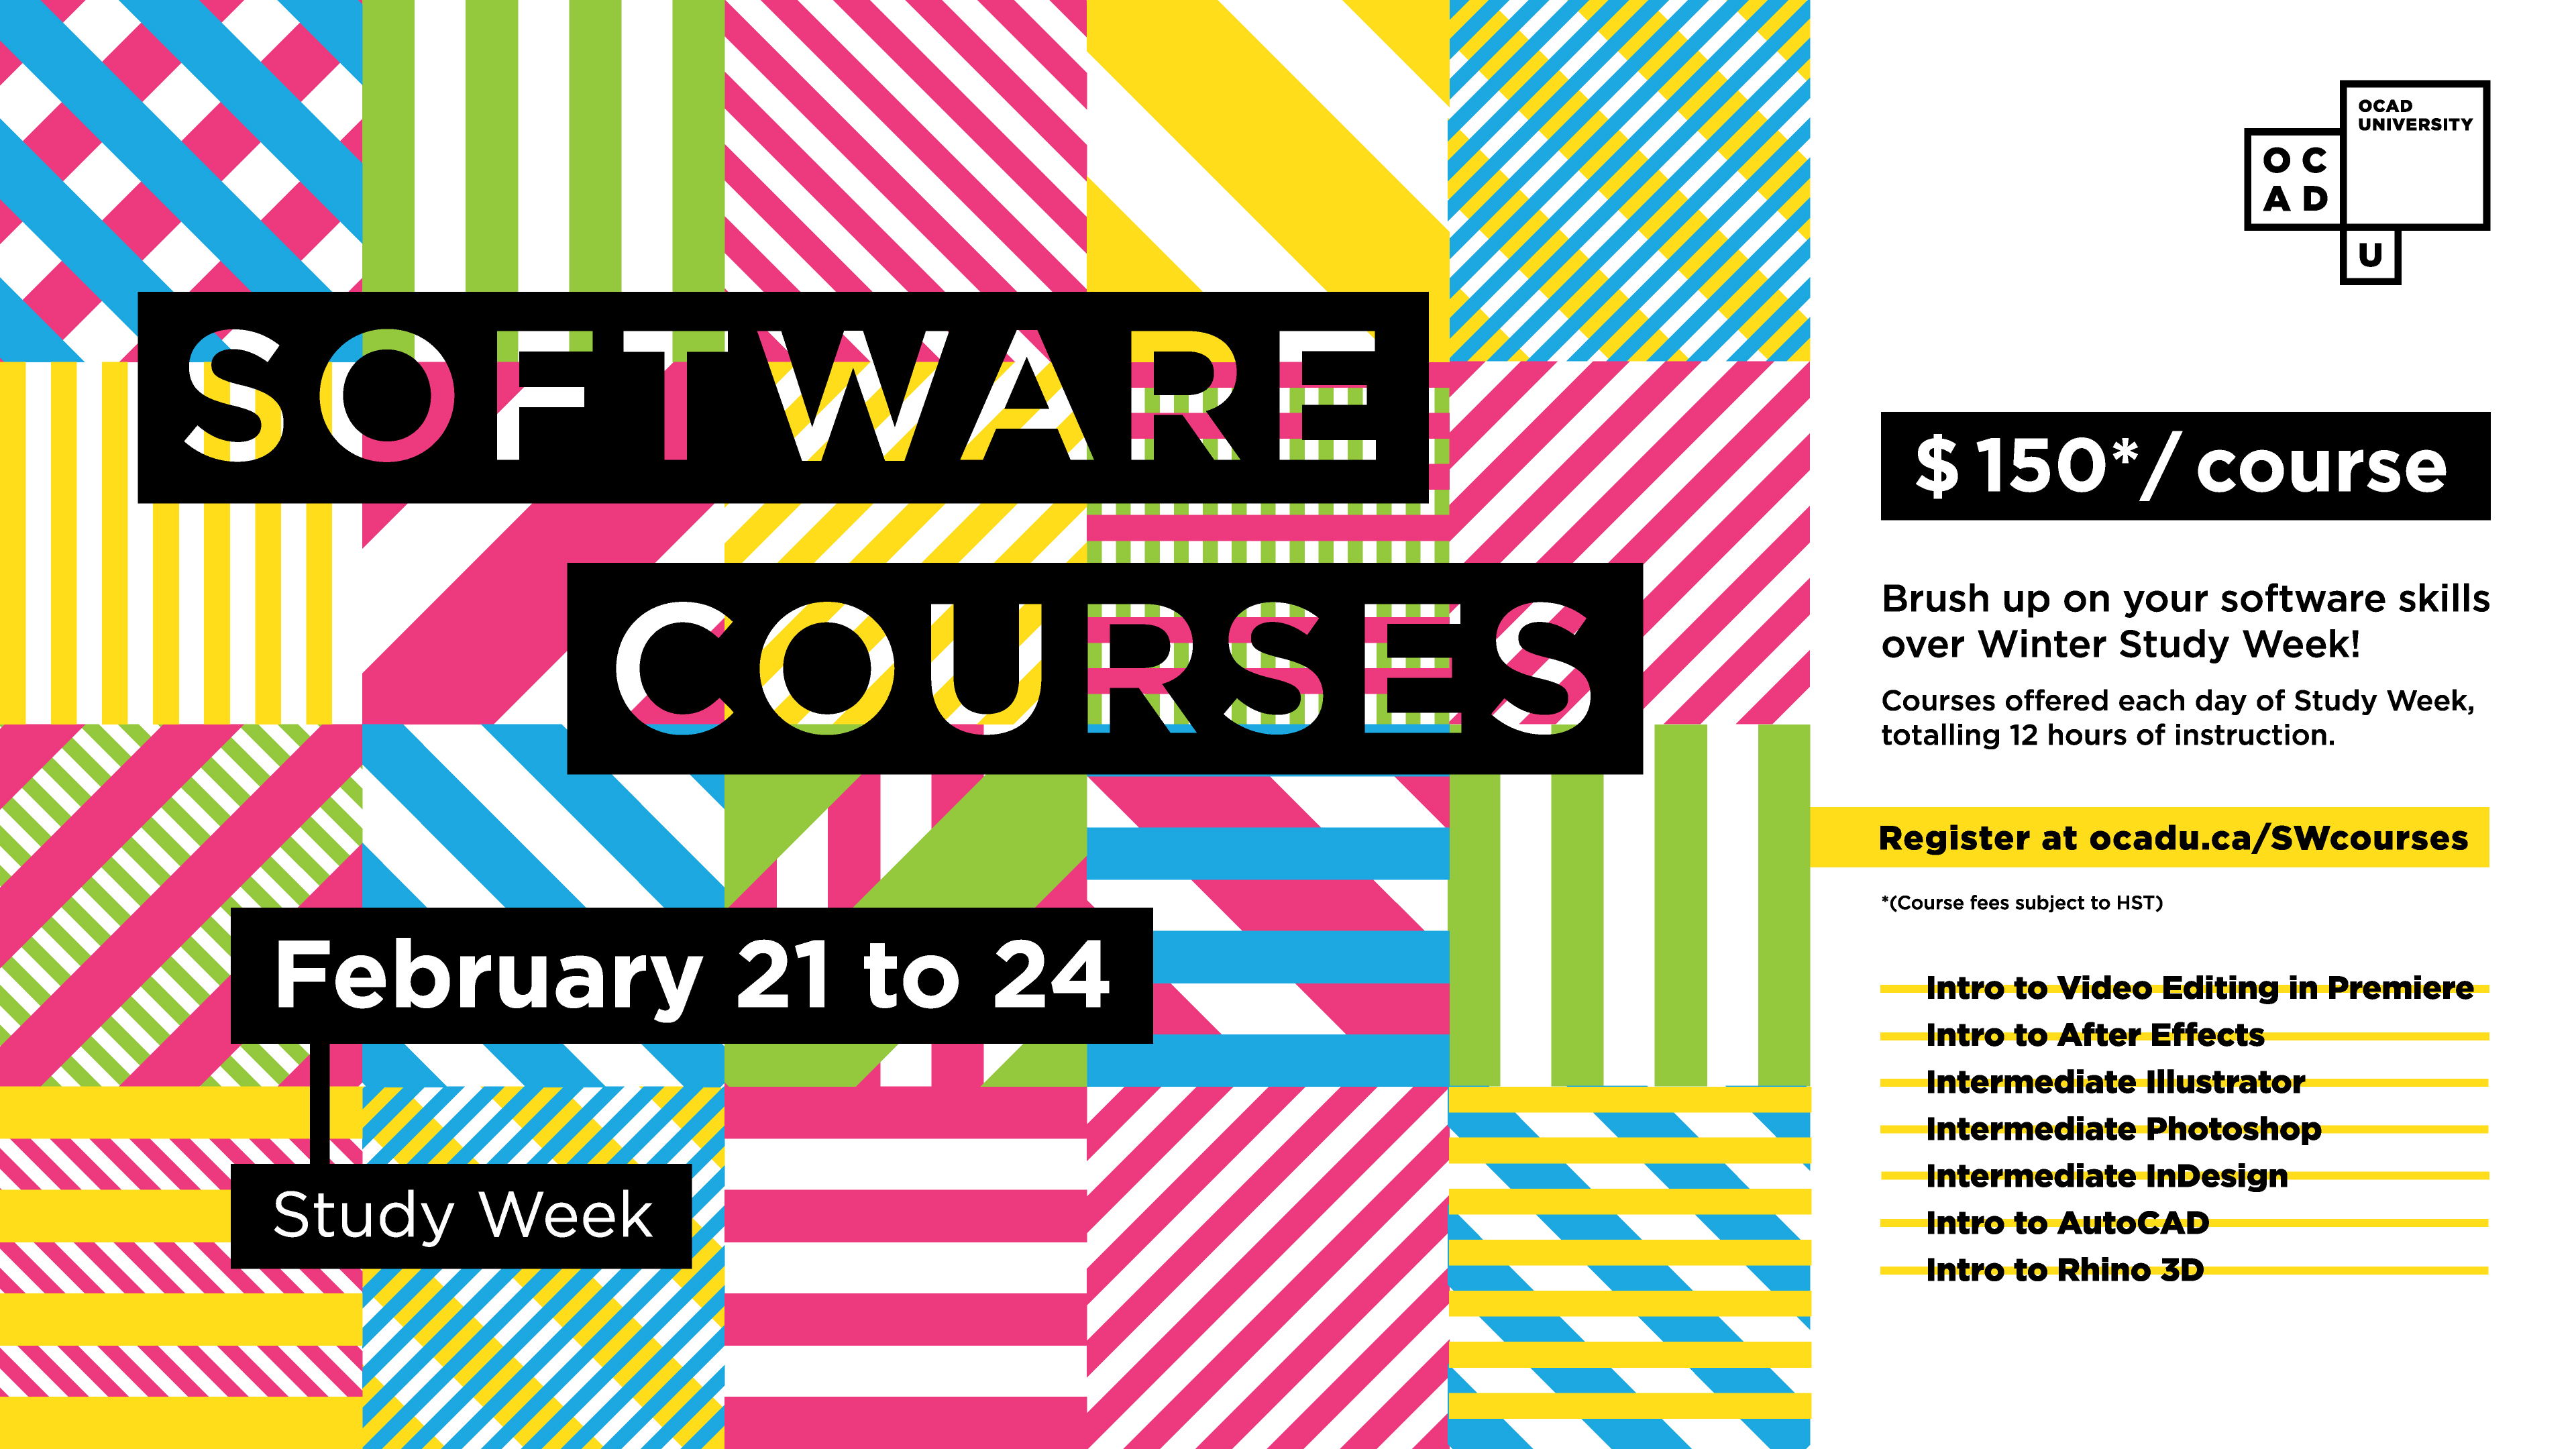 Study Week Software Courses February 21 to 24 with event info